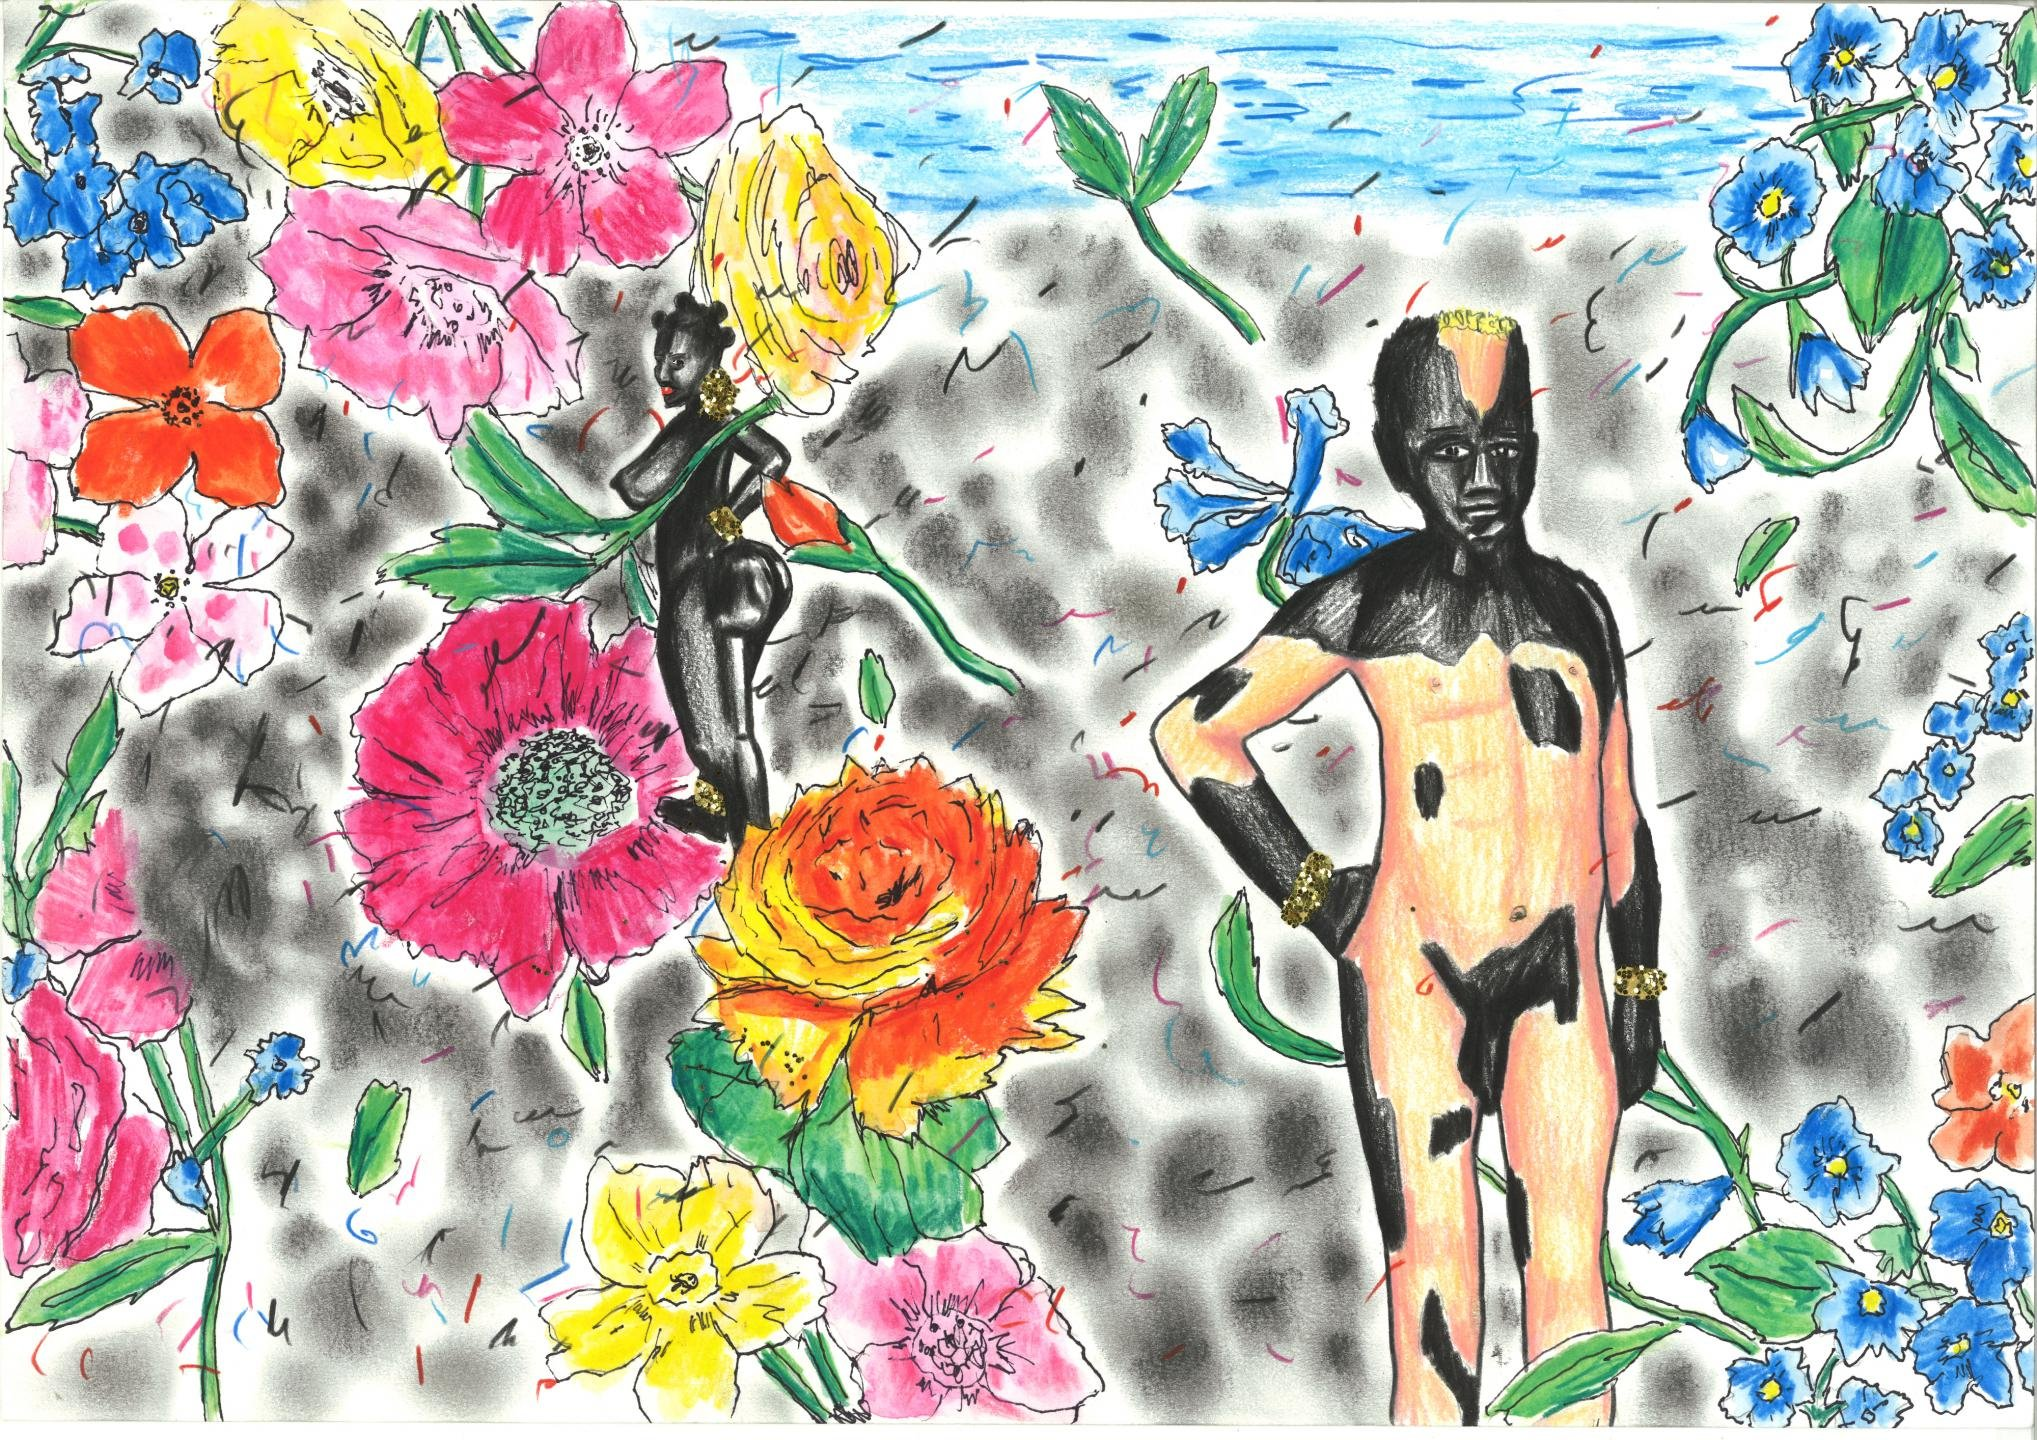 Lennon Jno-Baptiste, Untitled (Venus-Flower Spotted)